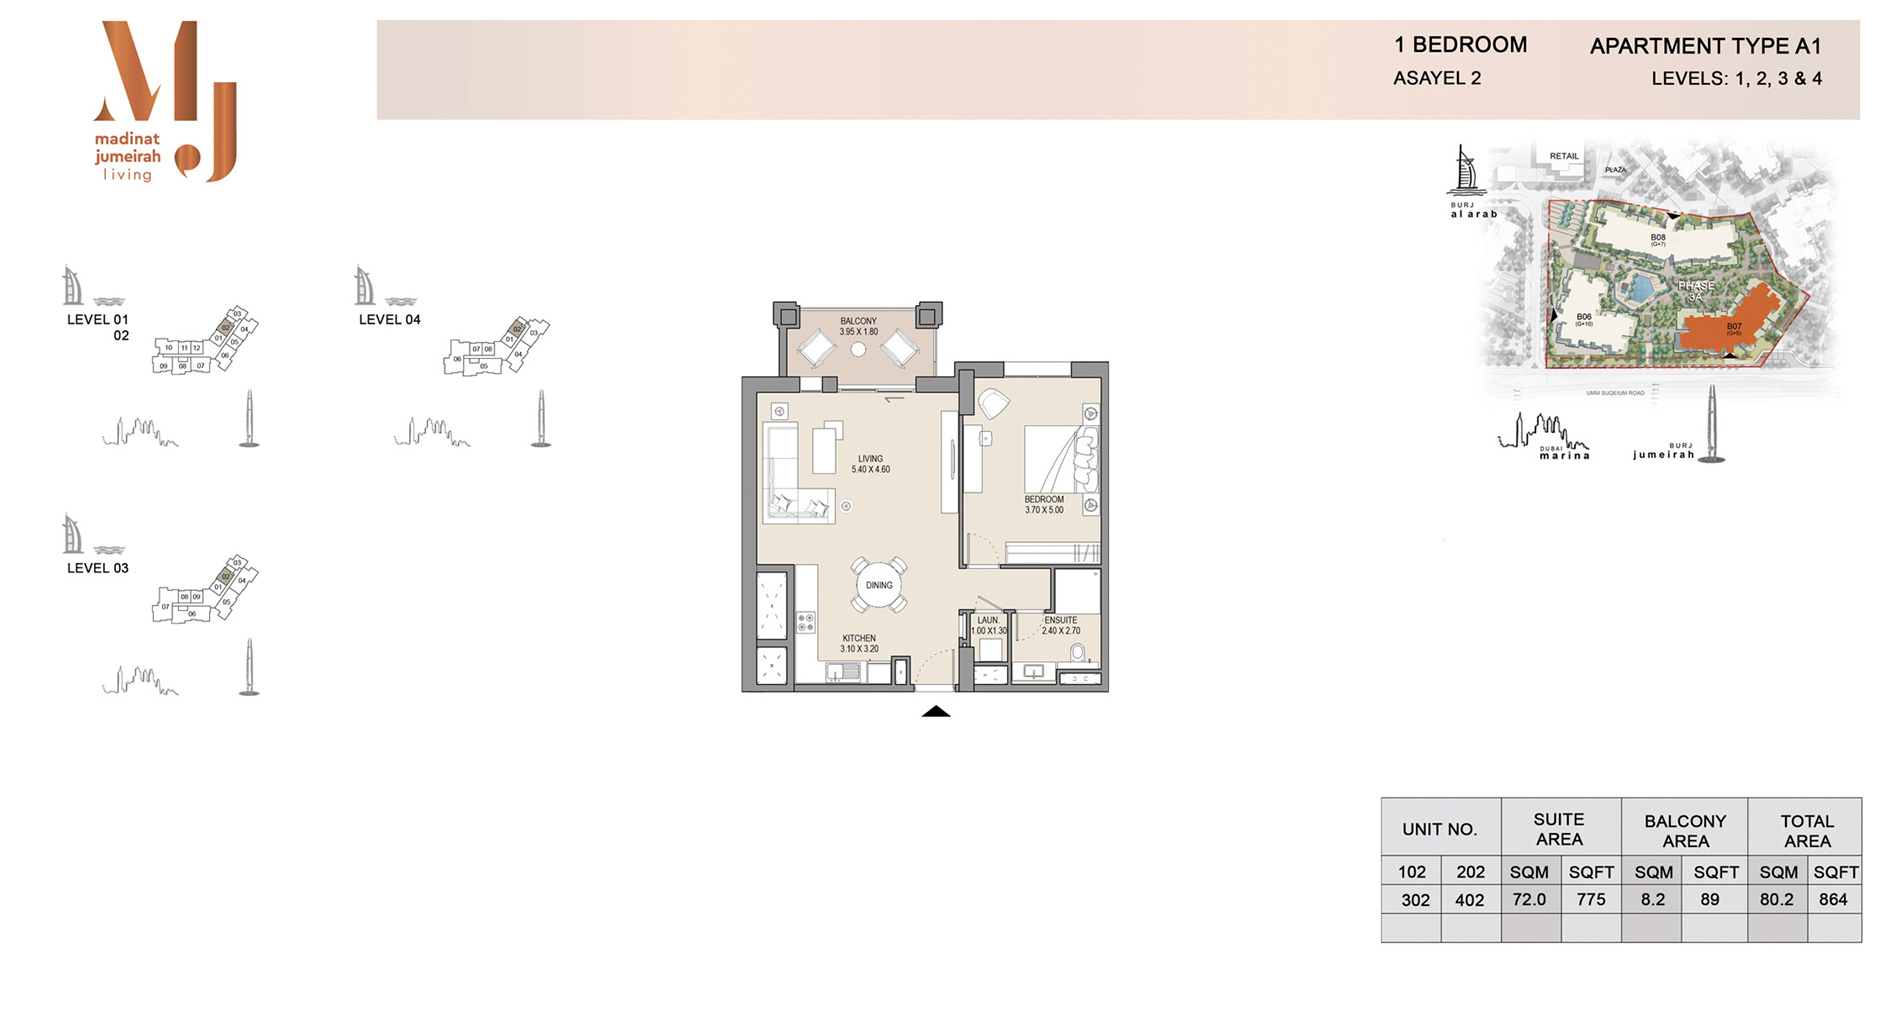 Building-2, 1 Bed Type A Level G, Size 1199    sq. ft.